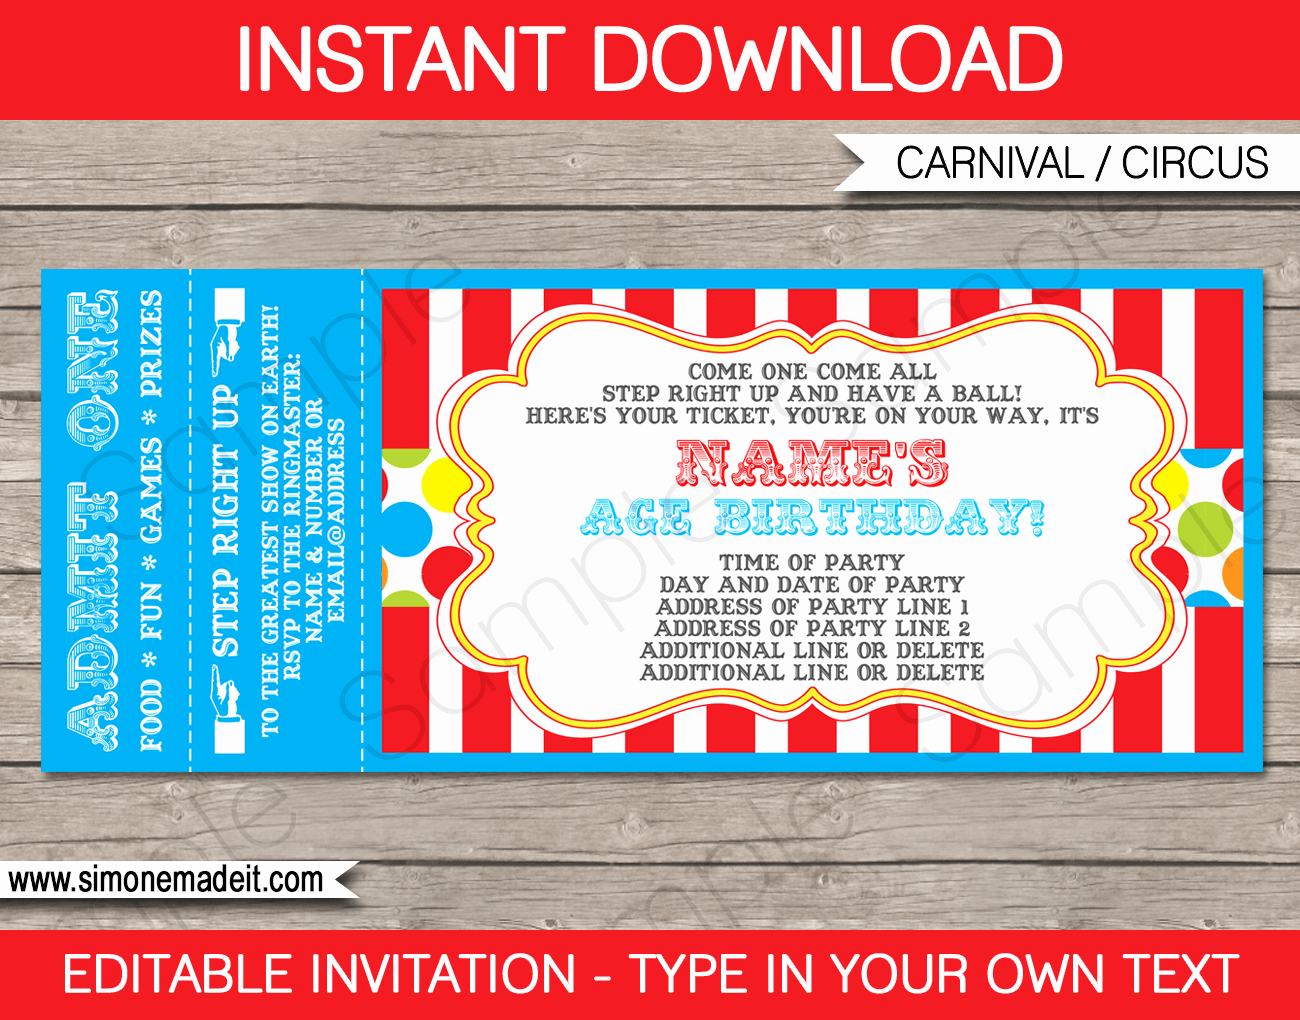 Admission Ticket Invitation Template Free Elegant Carnival Party Ticket Invitation Template